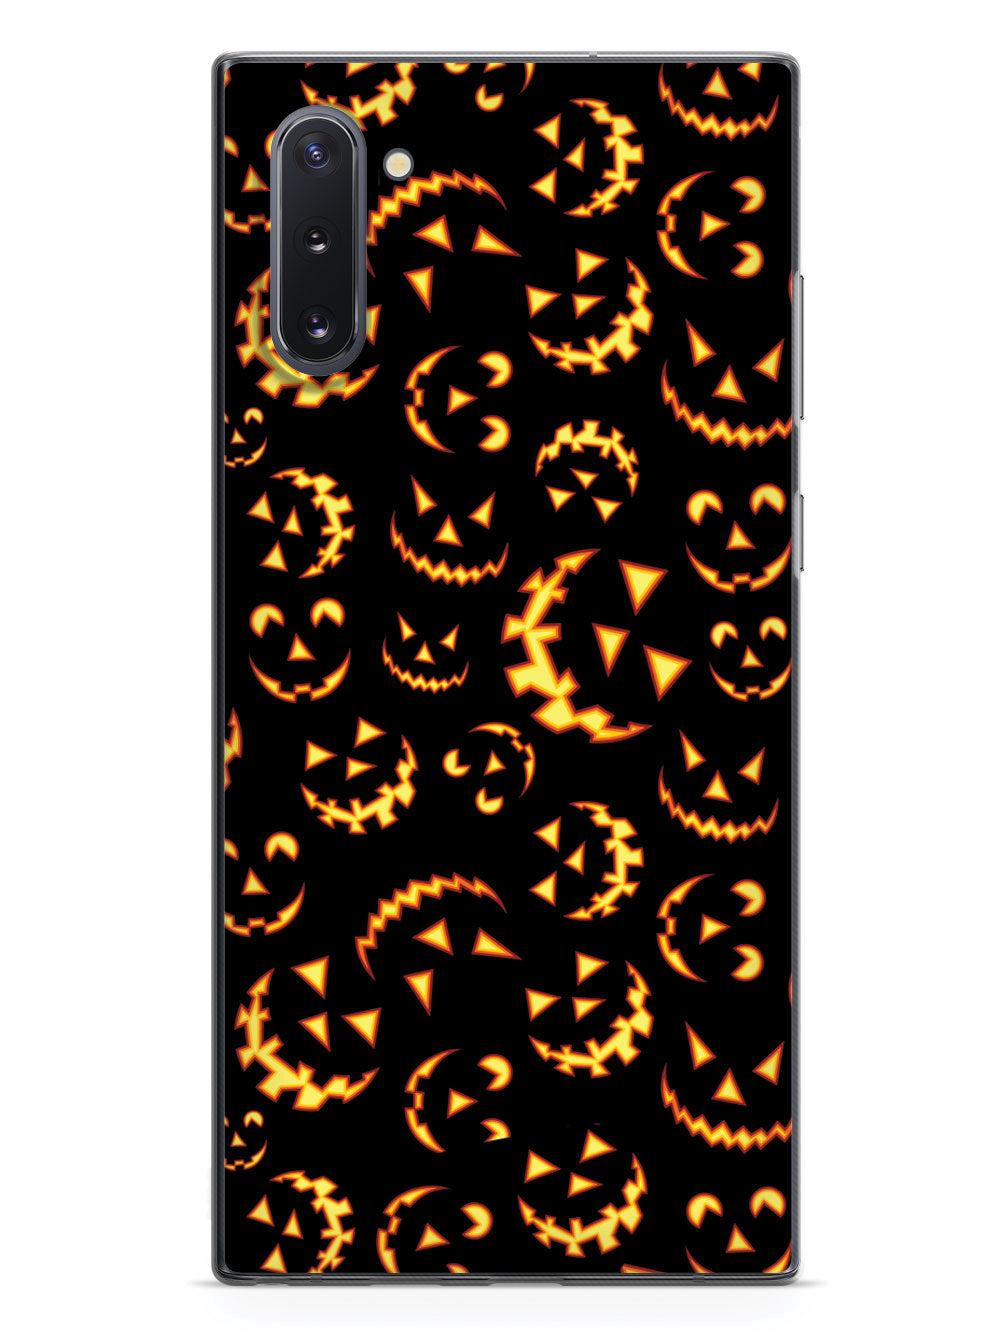 Glowing Pumpkins Halloween Pattern Case